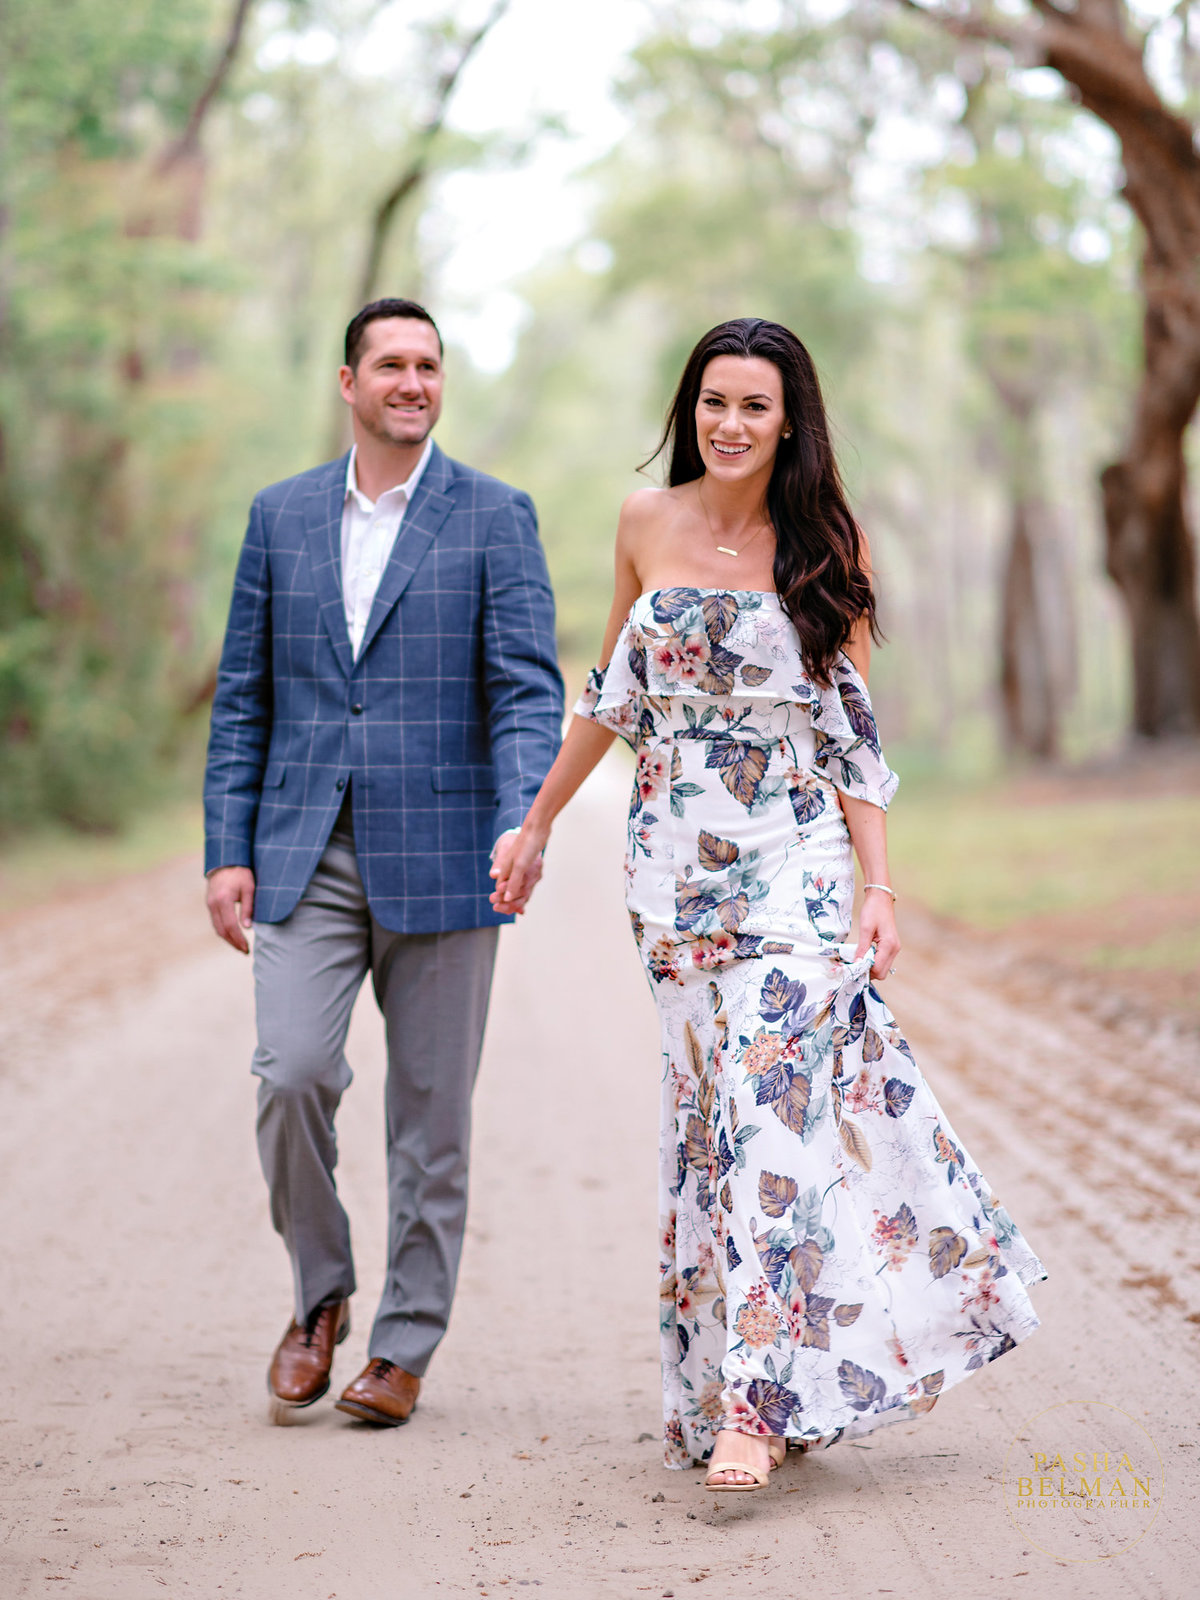 Charleston Engagement Photography | Engagement Pictures in Charleston | Engagement Portraits by Pasha Belman Photographer-21